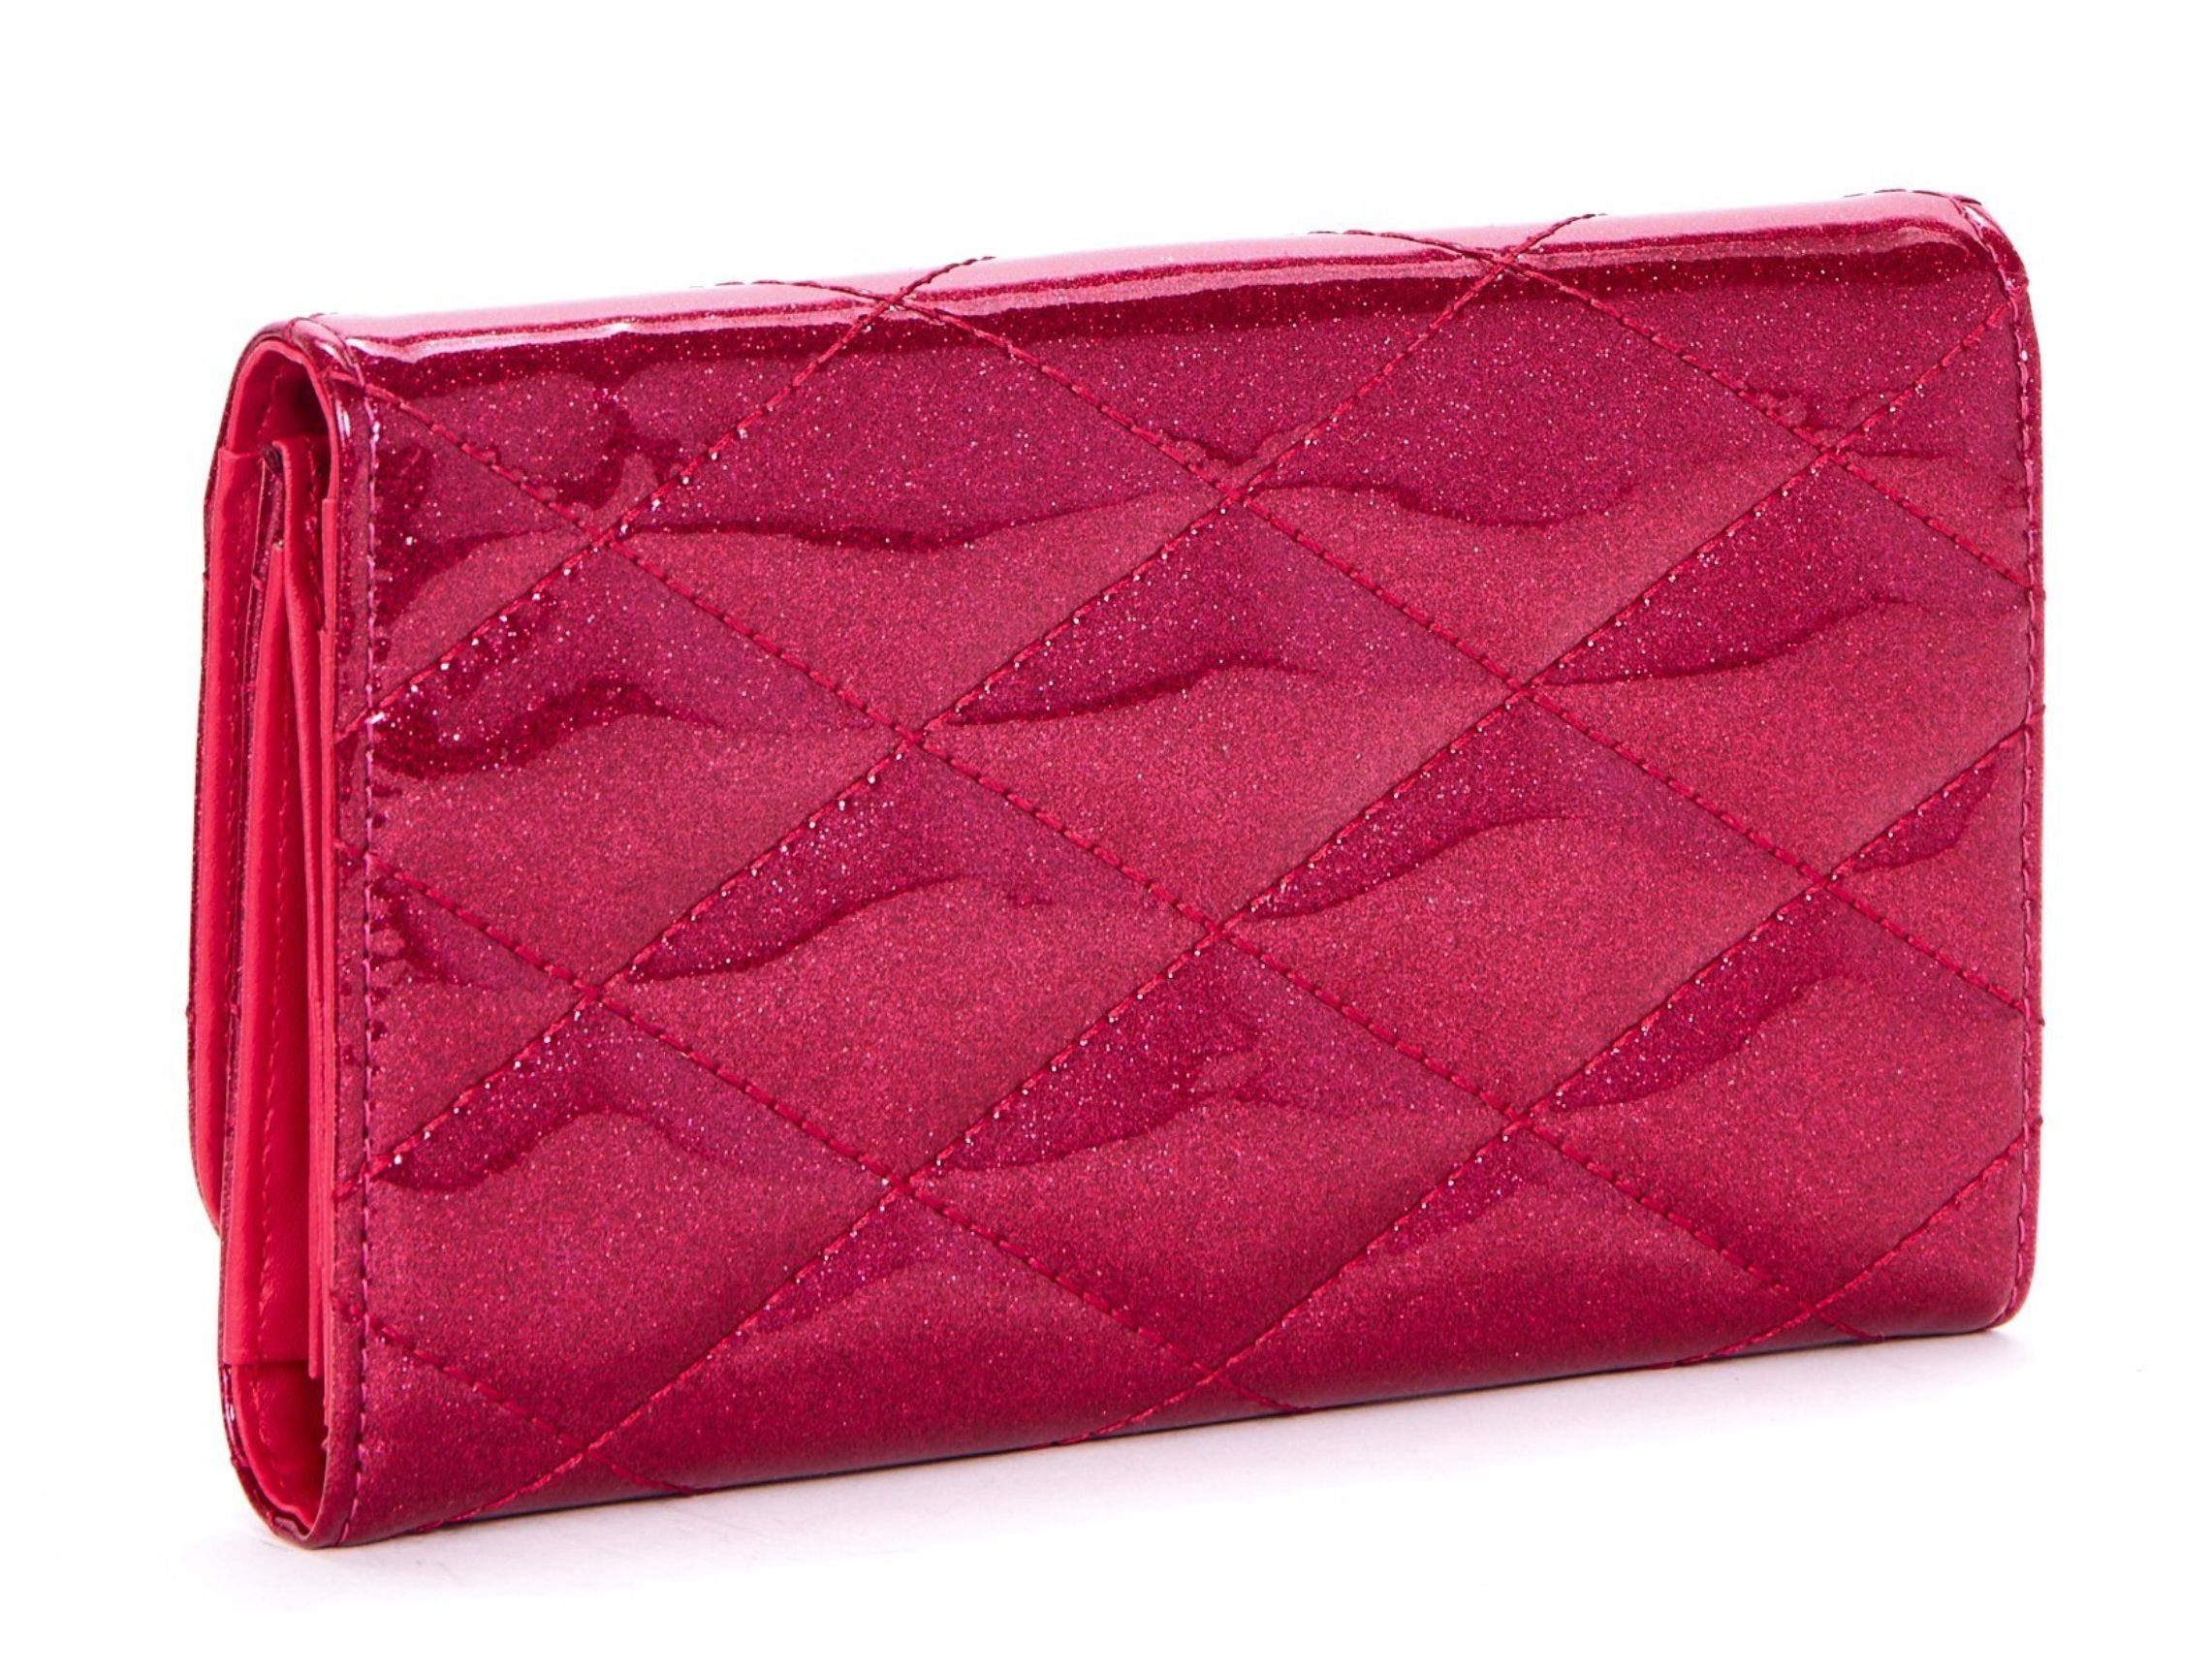 The V-8 HOT ROD Wallet - SIZZLE PINK SPARKLE